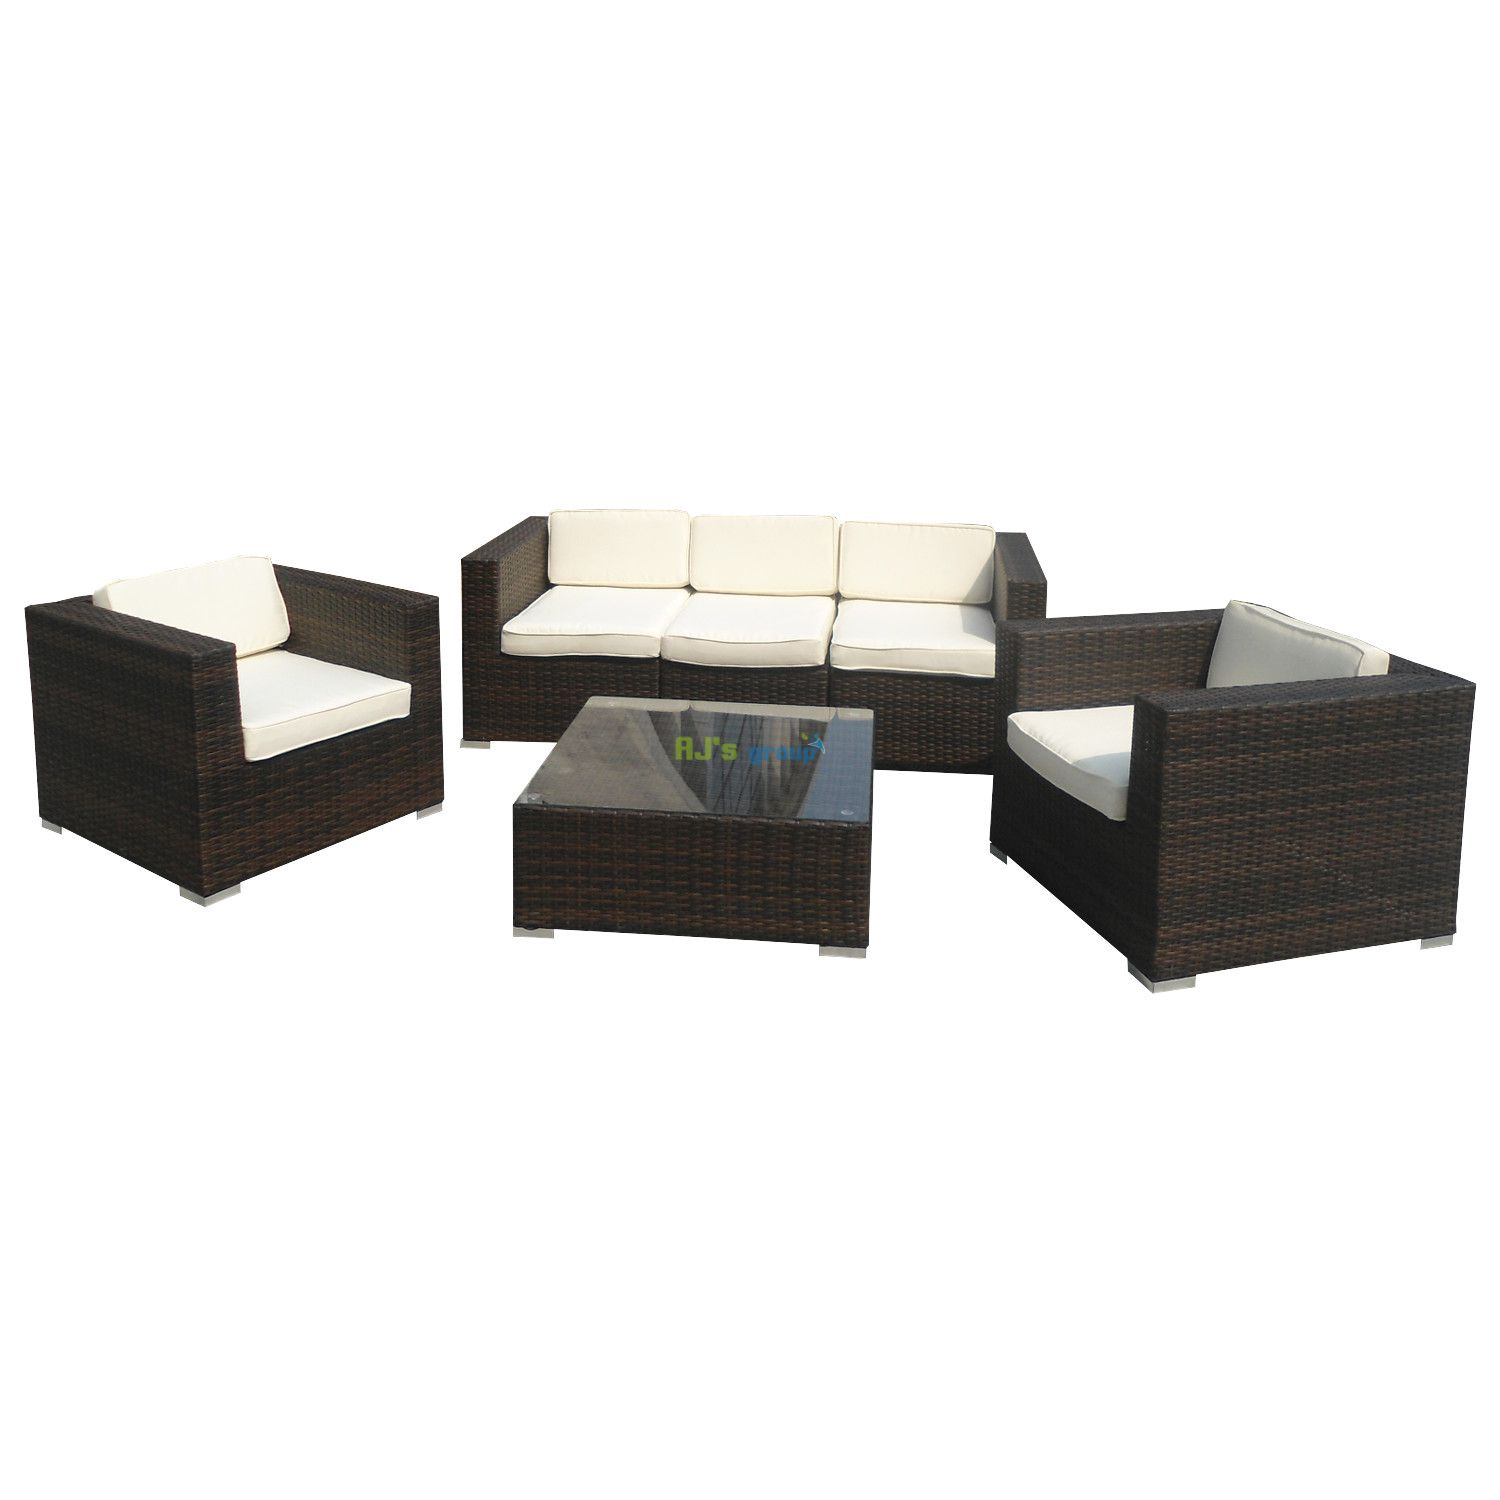 loungembel outdoor wetterfest elegant full size of rattan lounge tlg loungembel gartenmbel. Black Bedroom Furniture Sets. Home Design Ideas